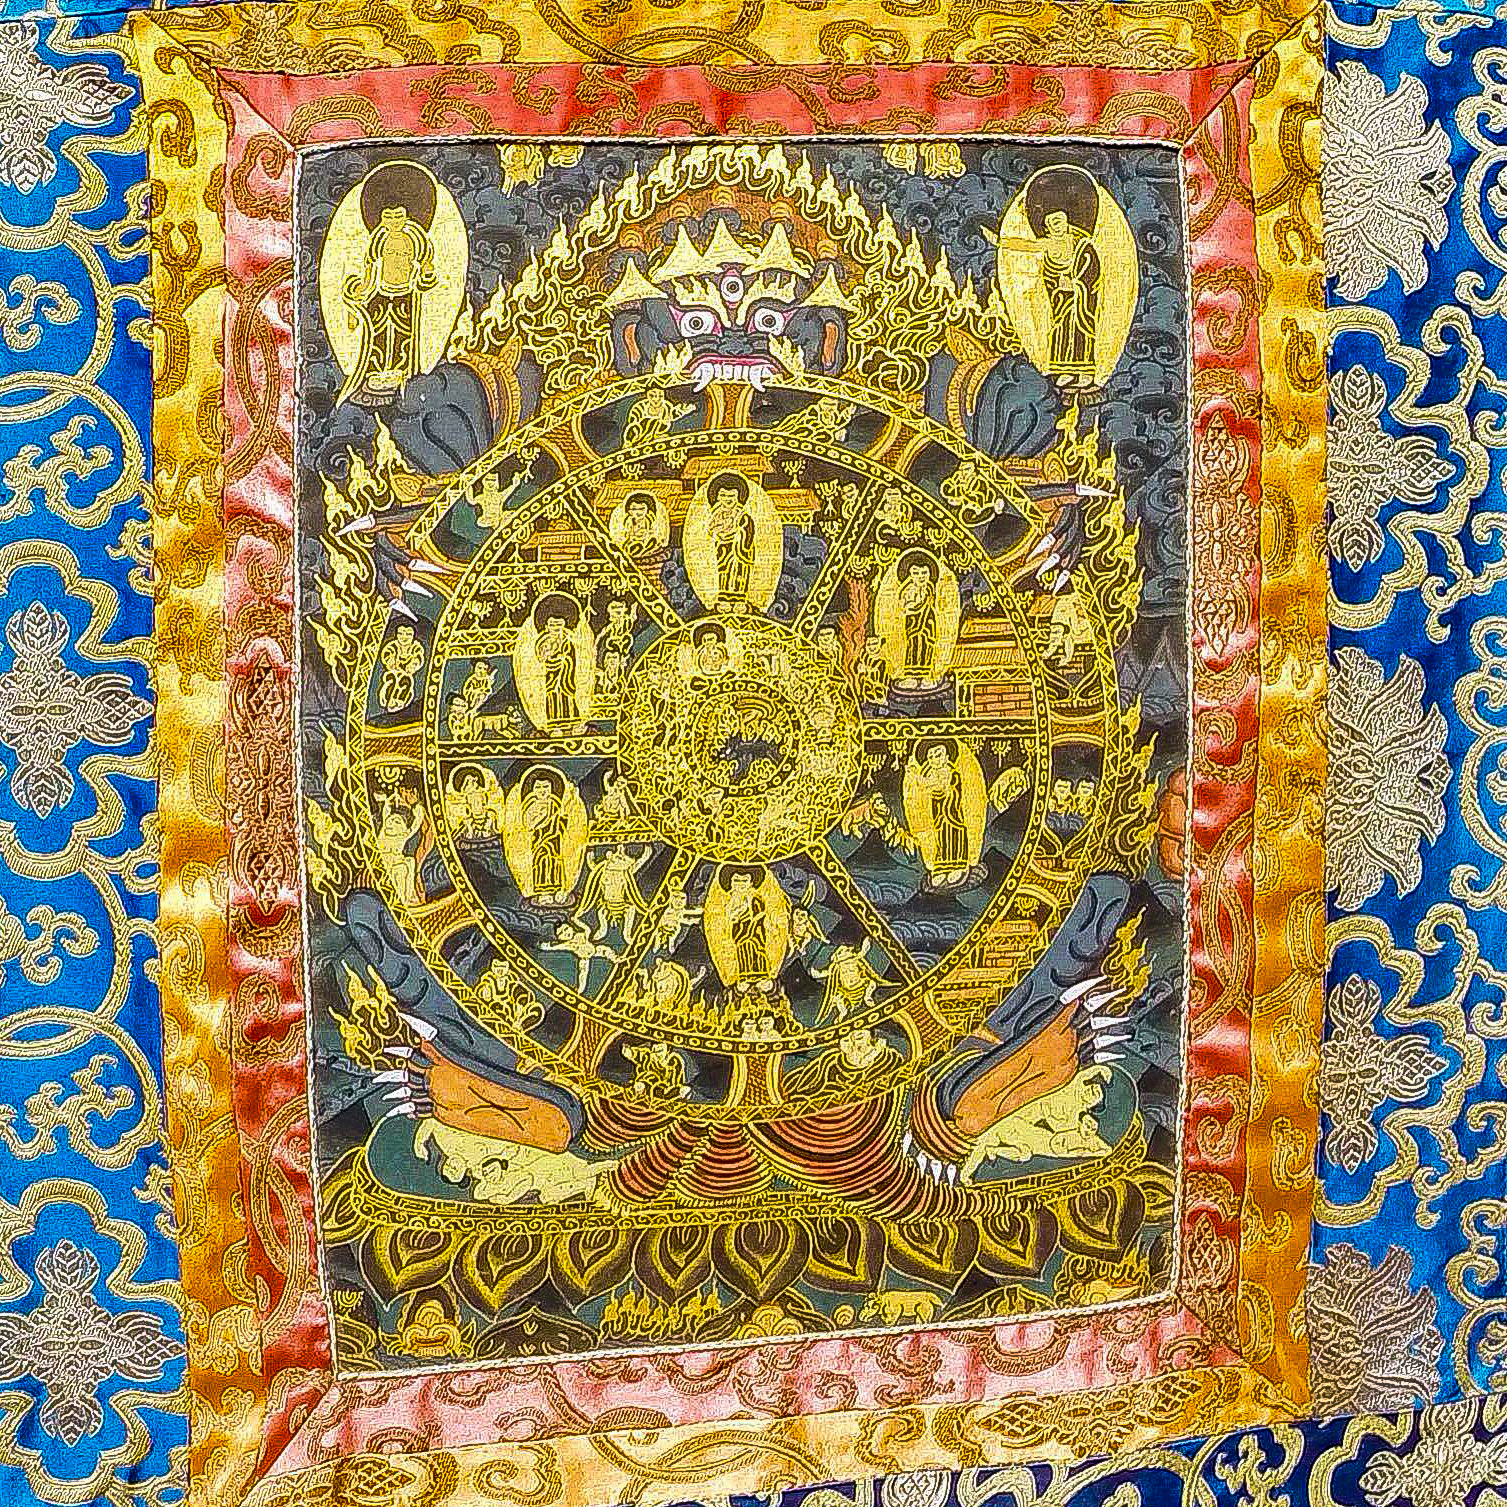 A tapestry depicting The Wheel of Life symbolizes the role of gods and karma in a Buddhist's journey to nirvana.